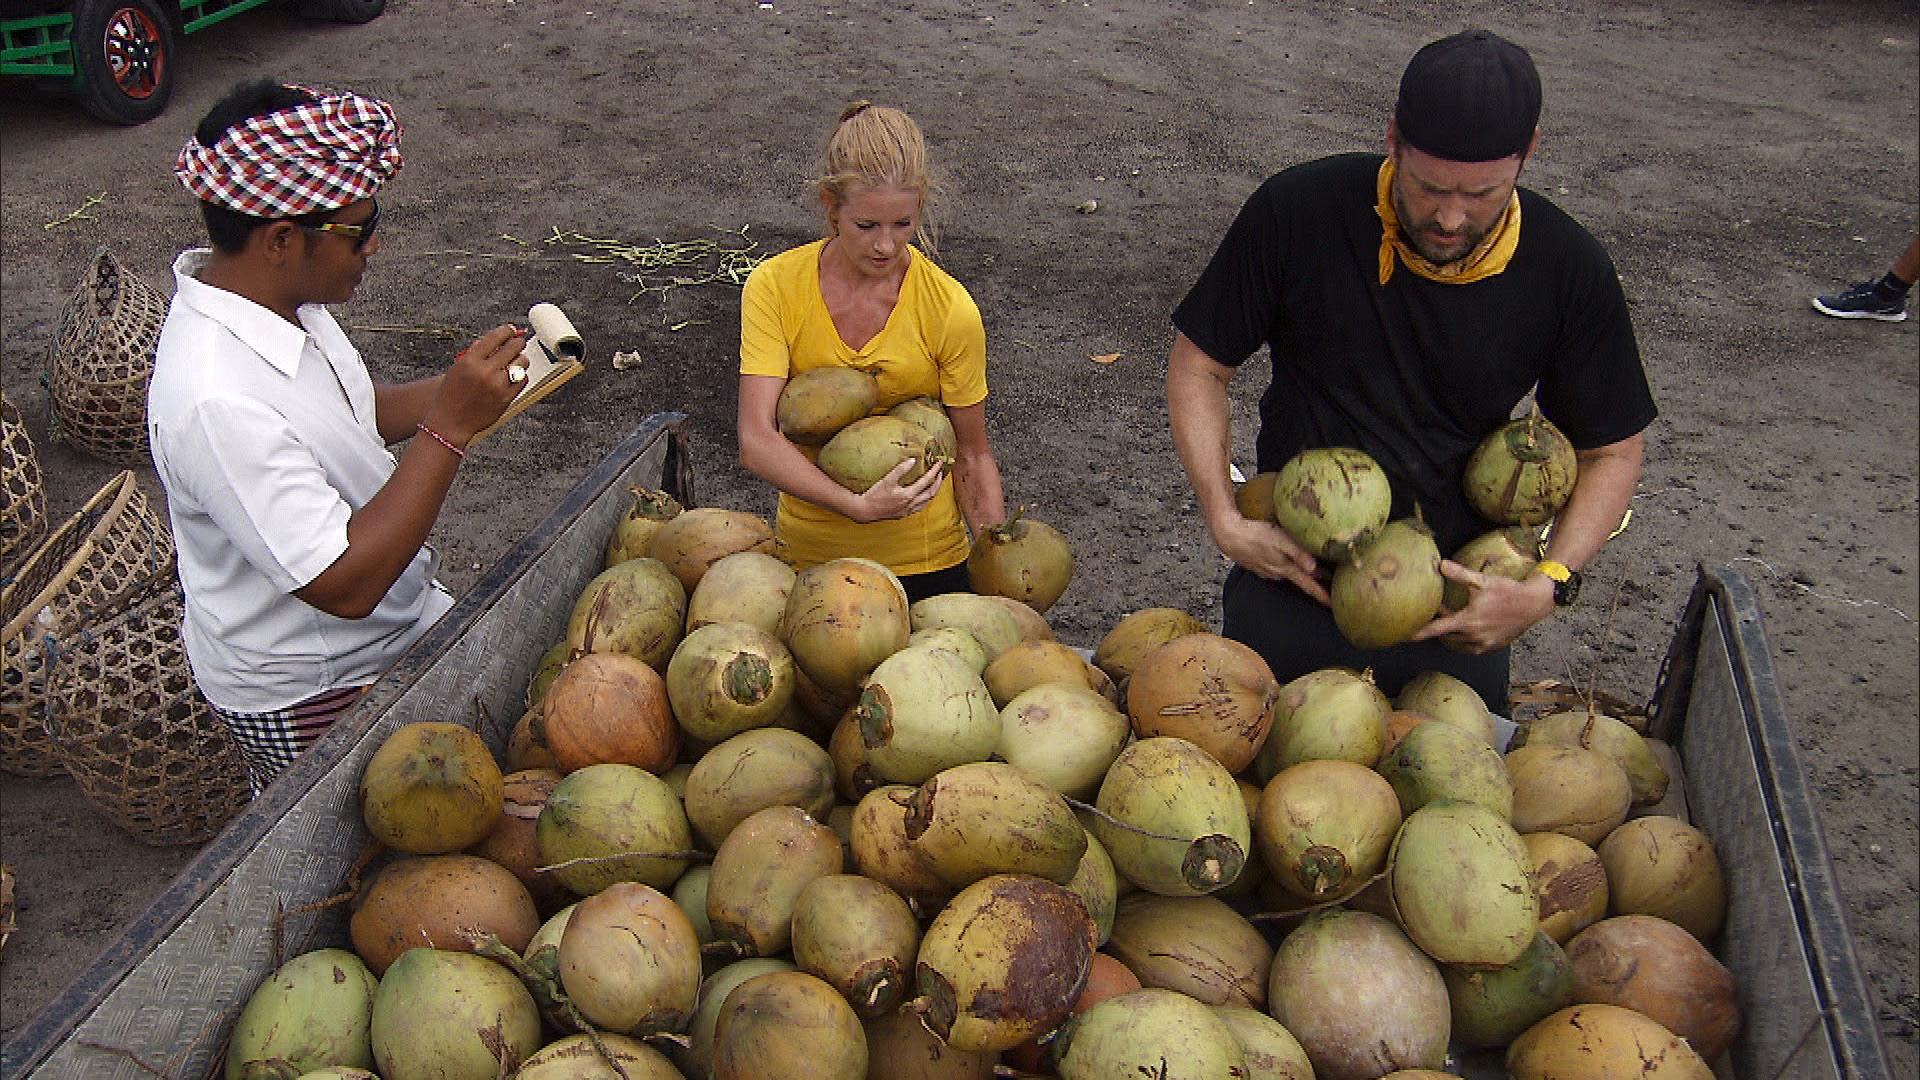 At Detour A, Ashley and Burnie are tasked with carrying 50 coconuts.